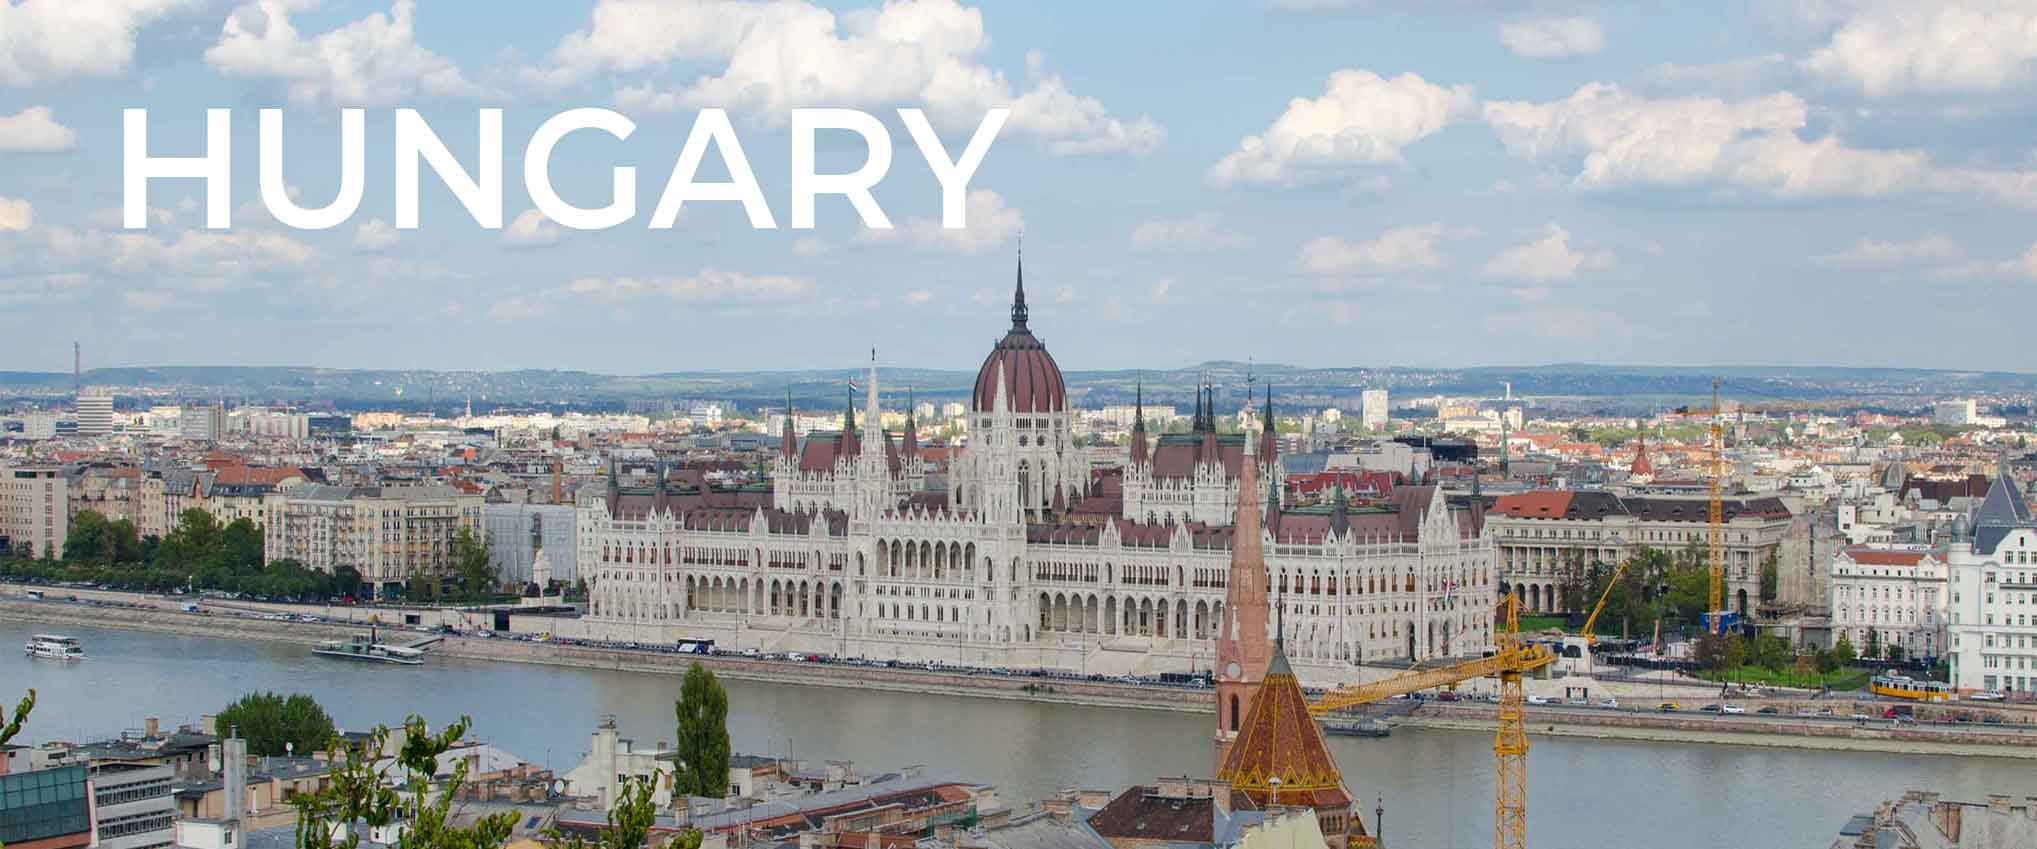 Hungary-page-banner